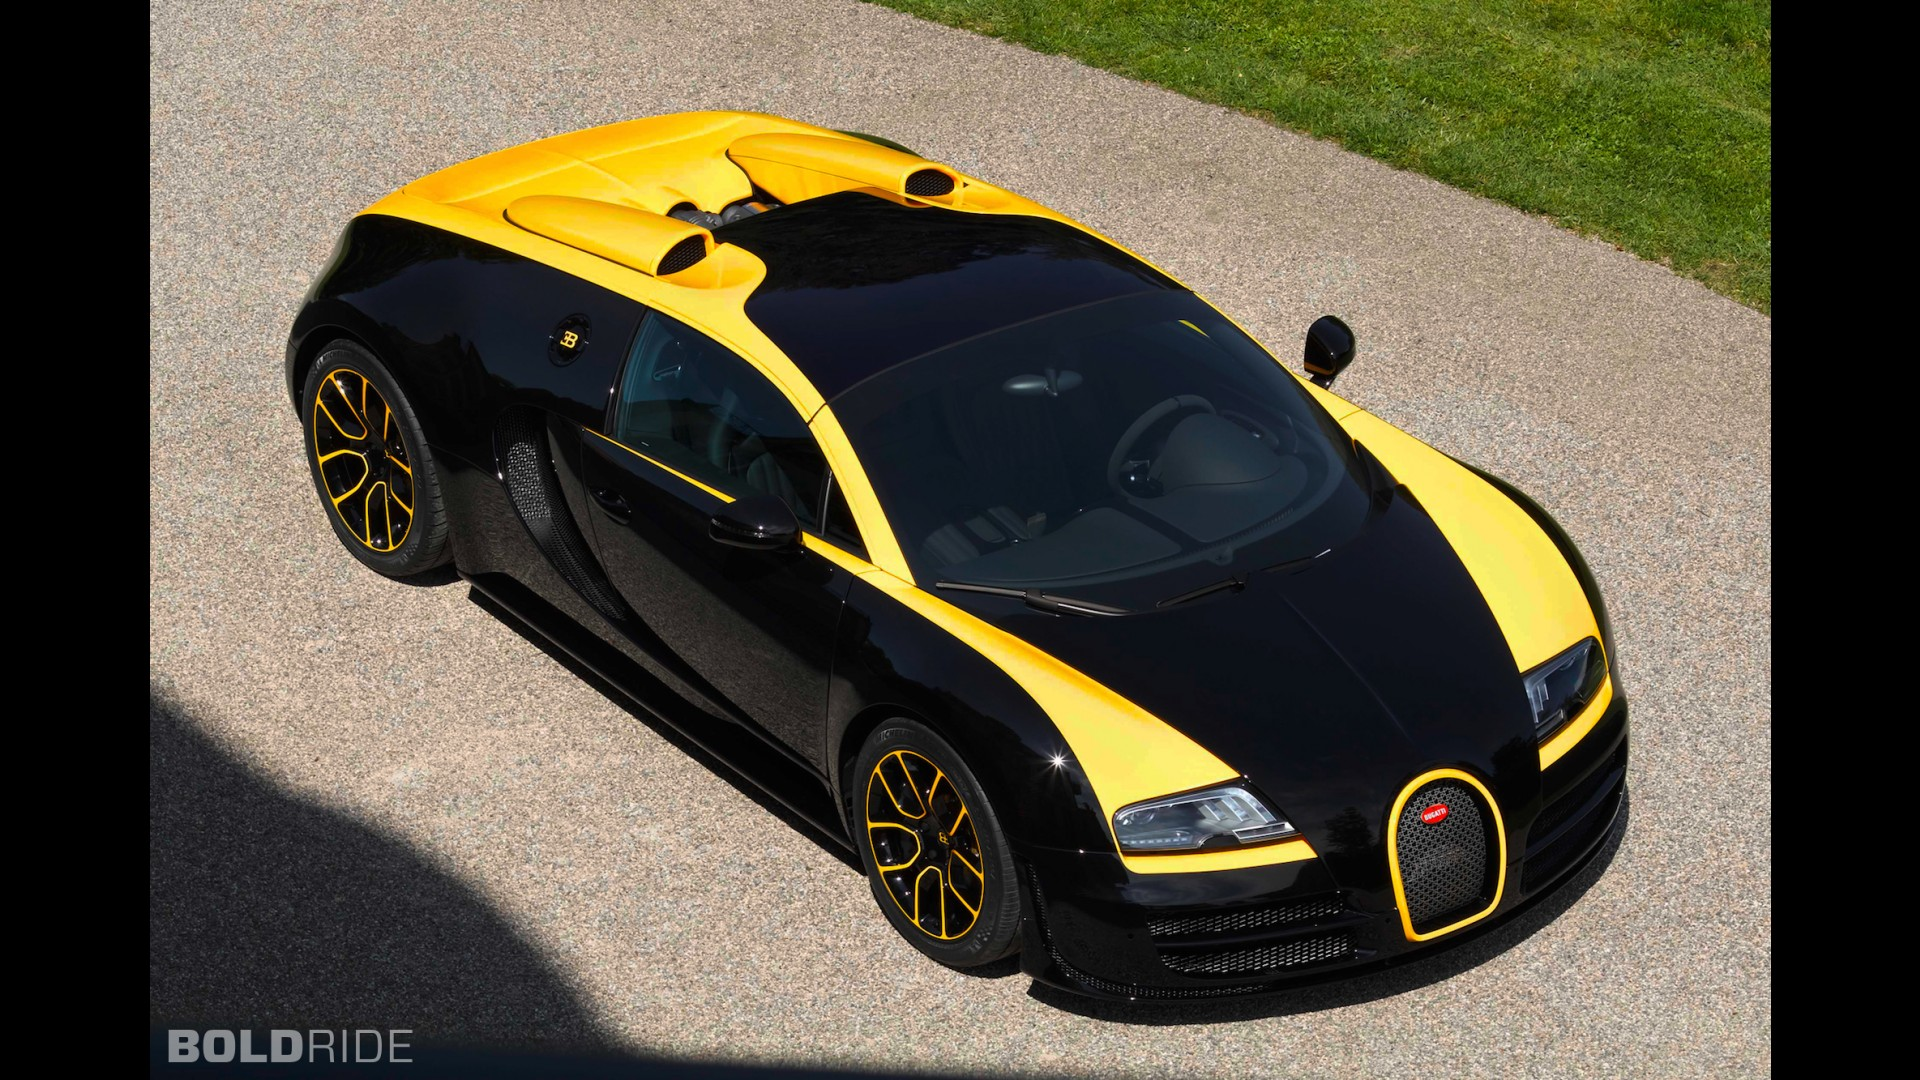 bugatti-veyron-grand-sport-roadster-vitesse-one-of-one Exciting Bugatti Veyron New Model 2015 Cars Trend